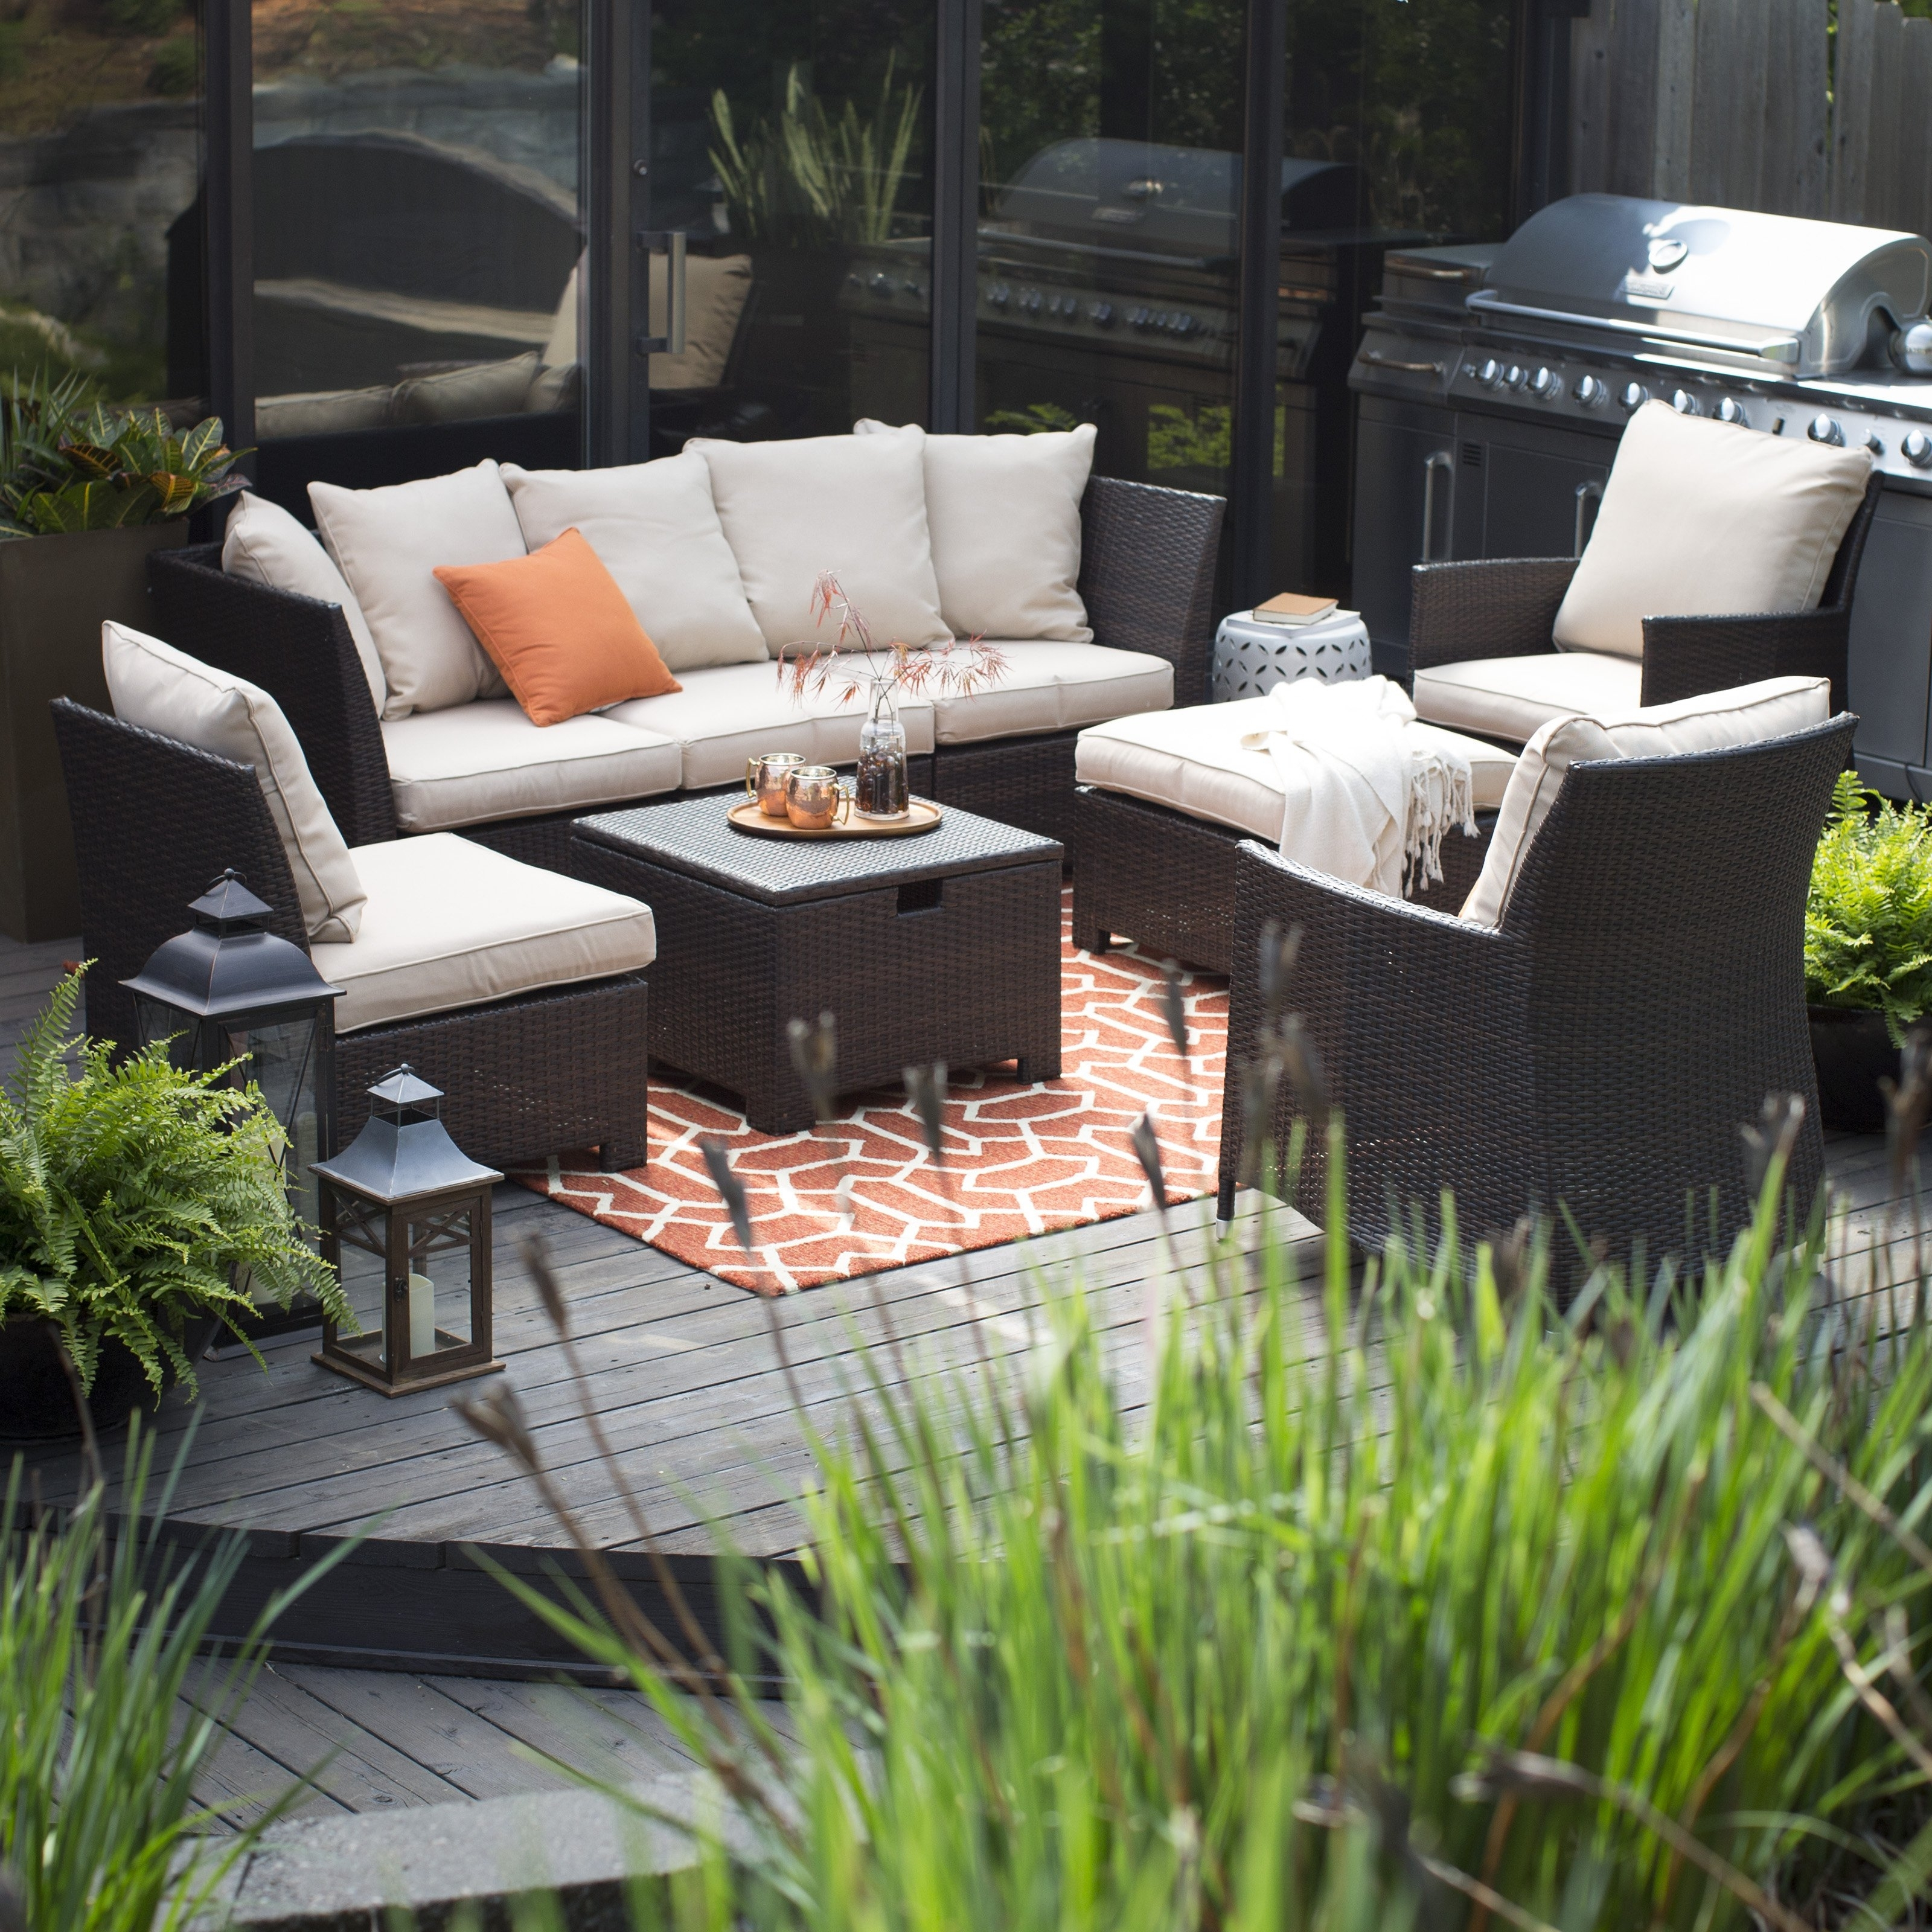 Patio Conversation Sets With Ottomans Pertaining To Most Up To Date Furniture: Appealing Dark Wicker Sofa With White Cushions And Wicker (View 11 of 20)